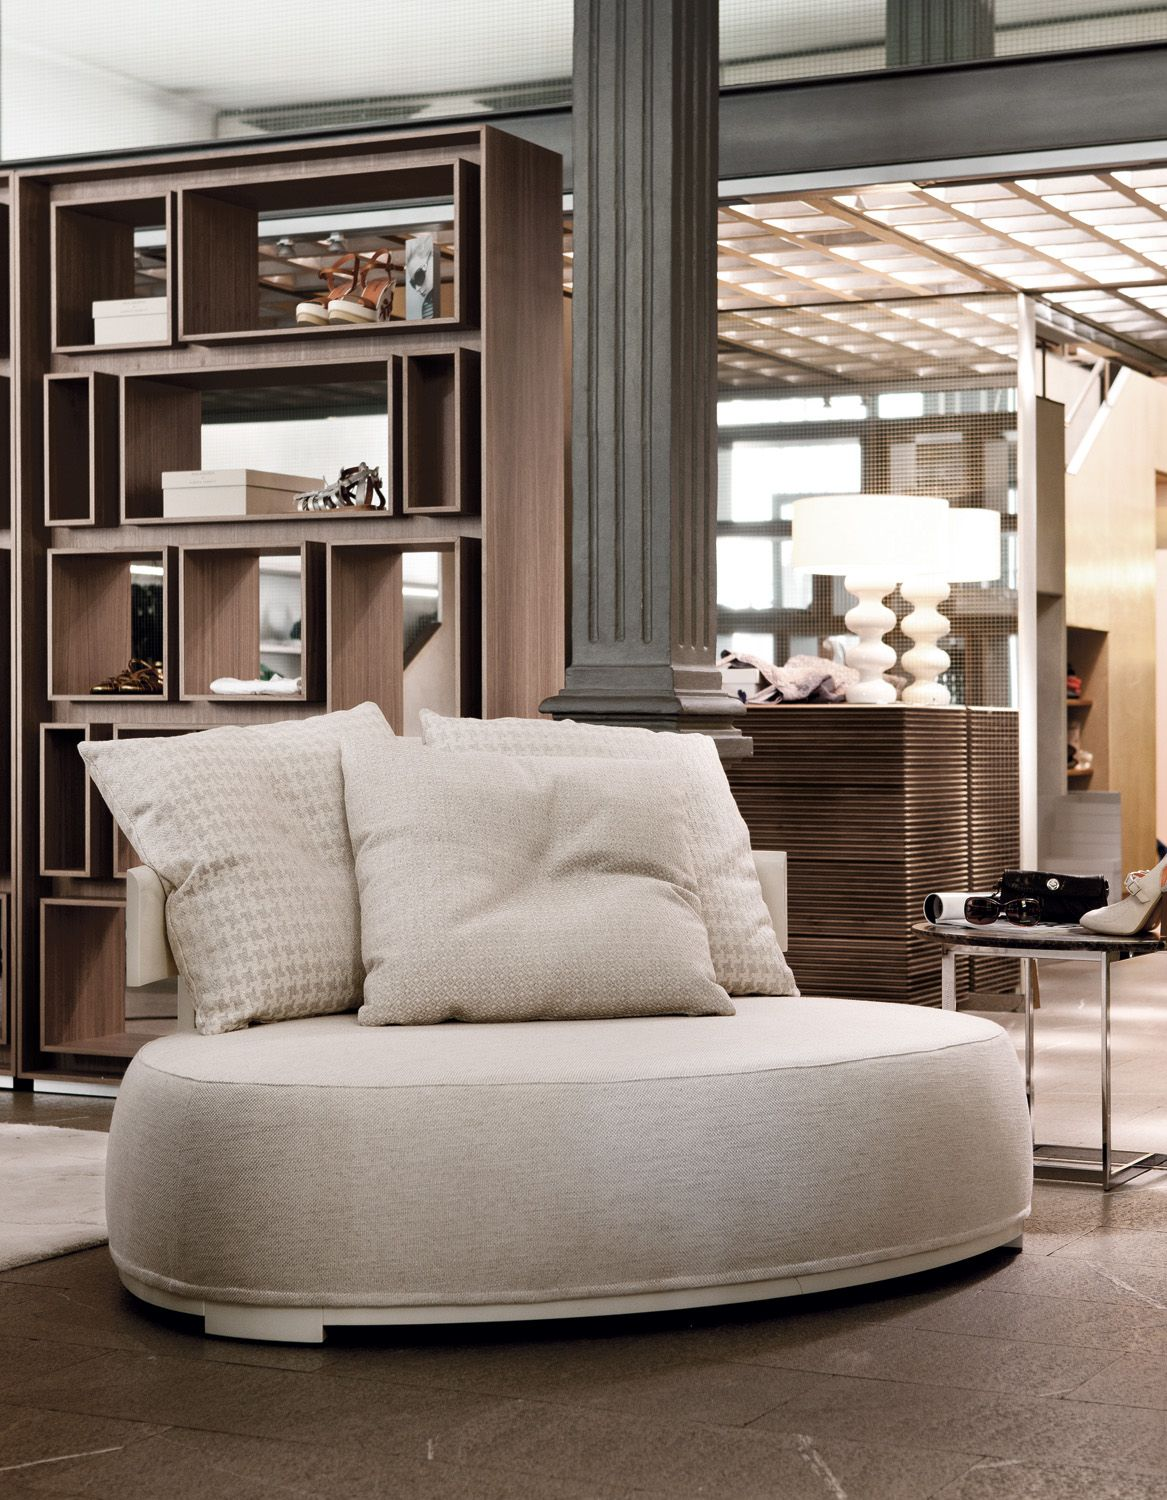 Porada arredi srl interior design pinterest muebles for Porada arredi